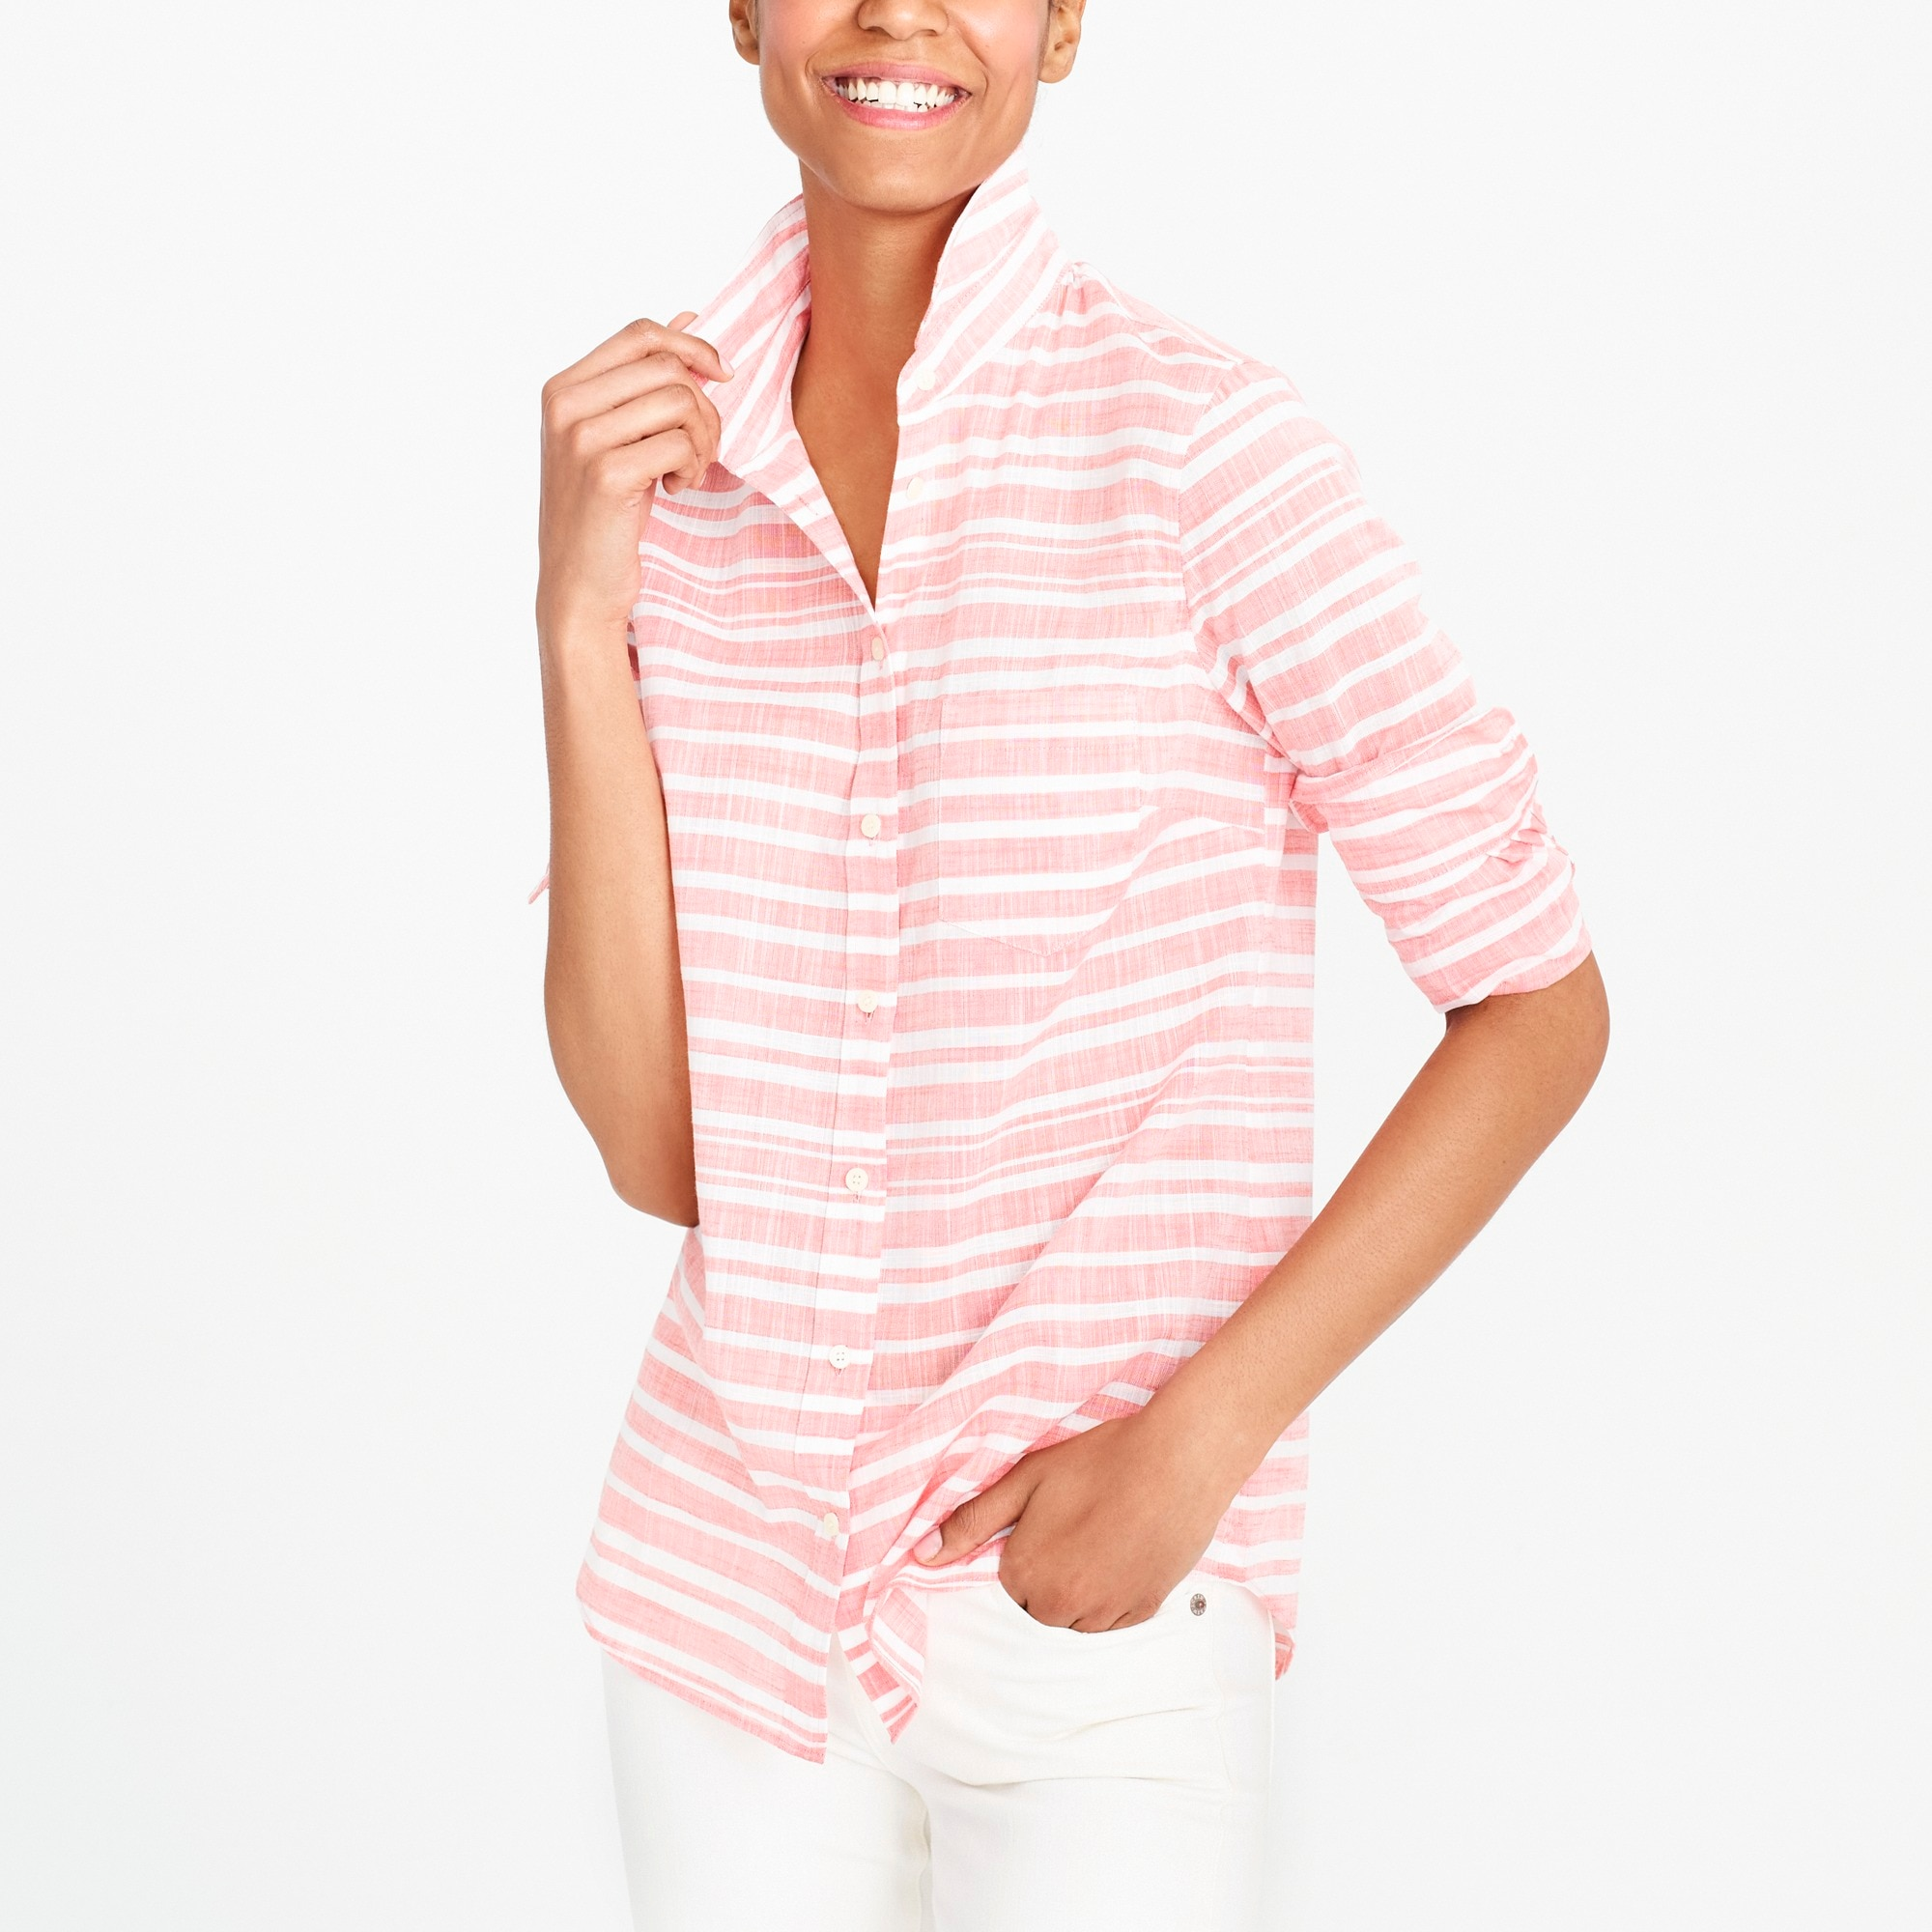 Striped gauze boy shirt factorywomen new arrivals c